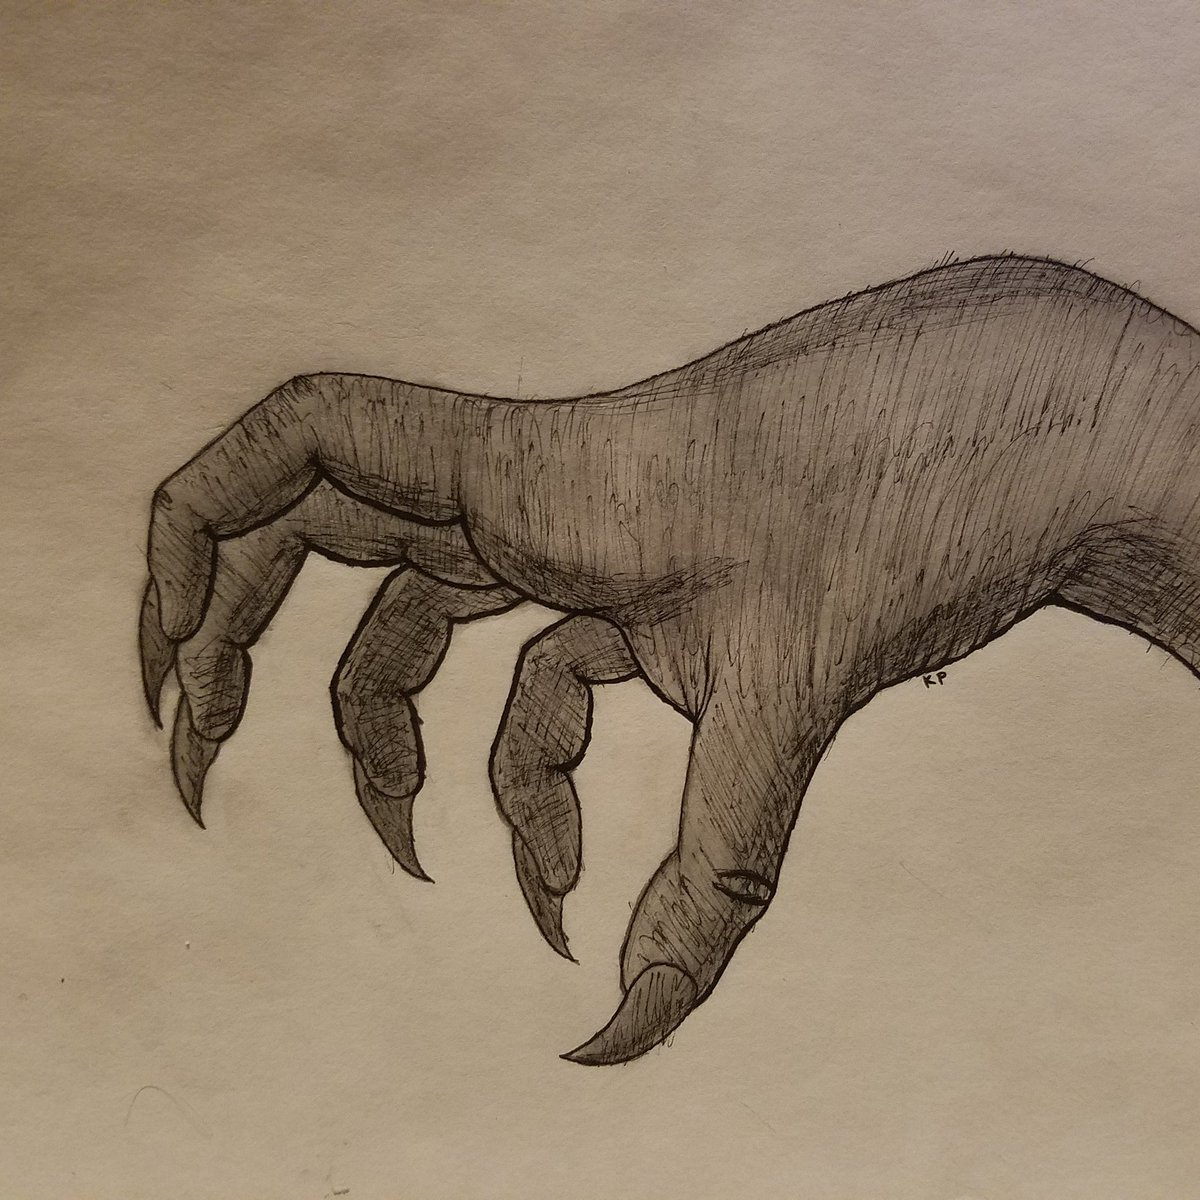 Monster Hand Drawing at GetDrawings.com | Free for personal use ...